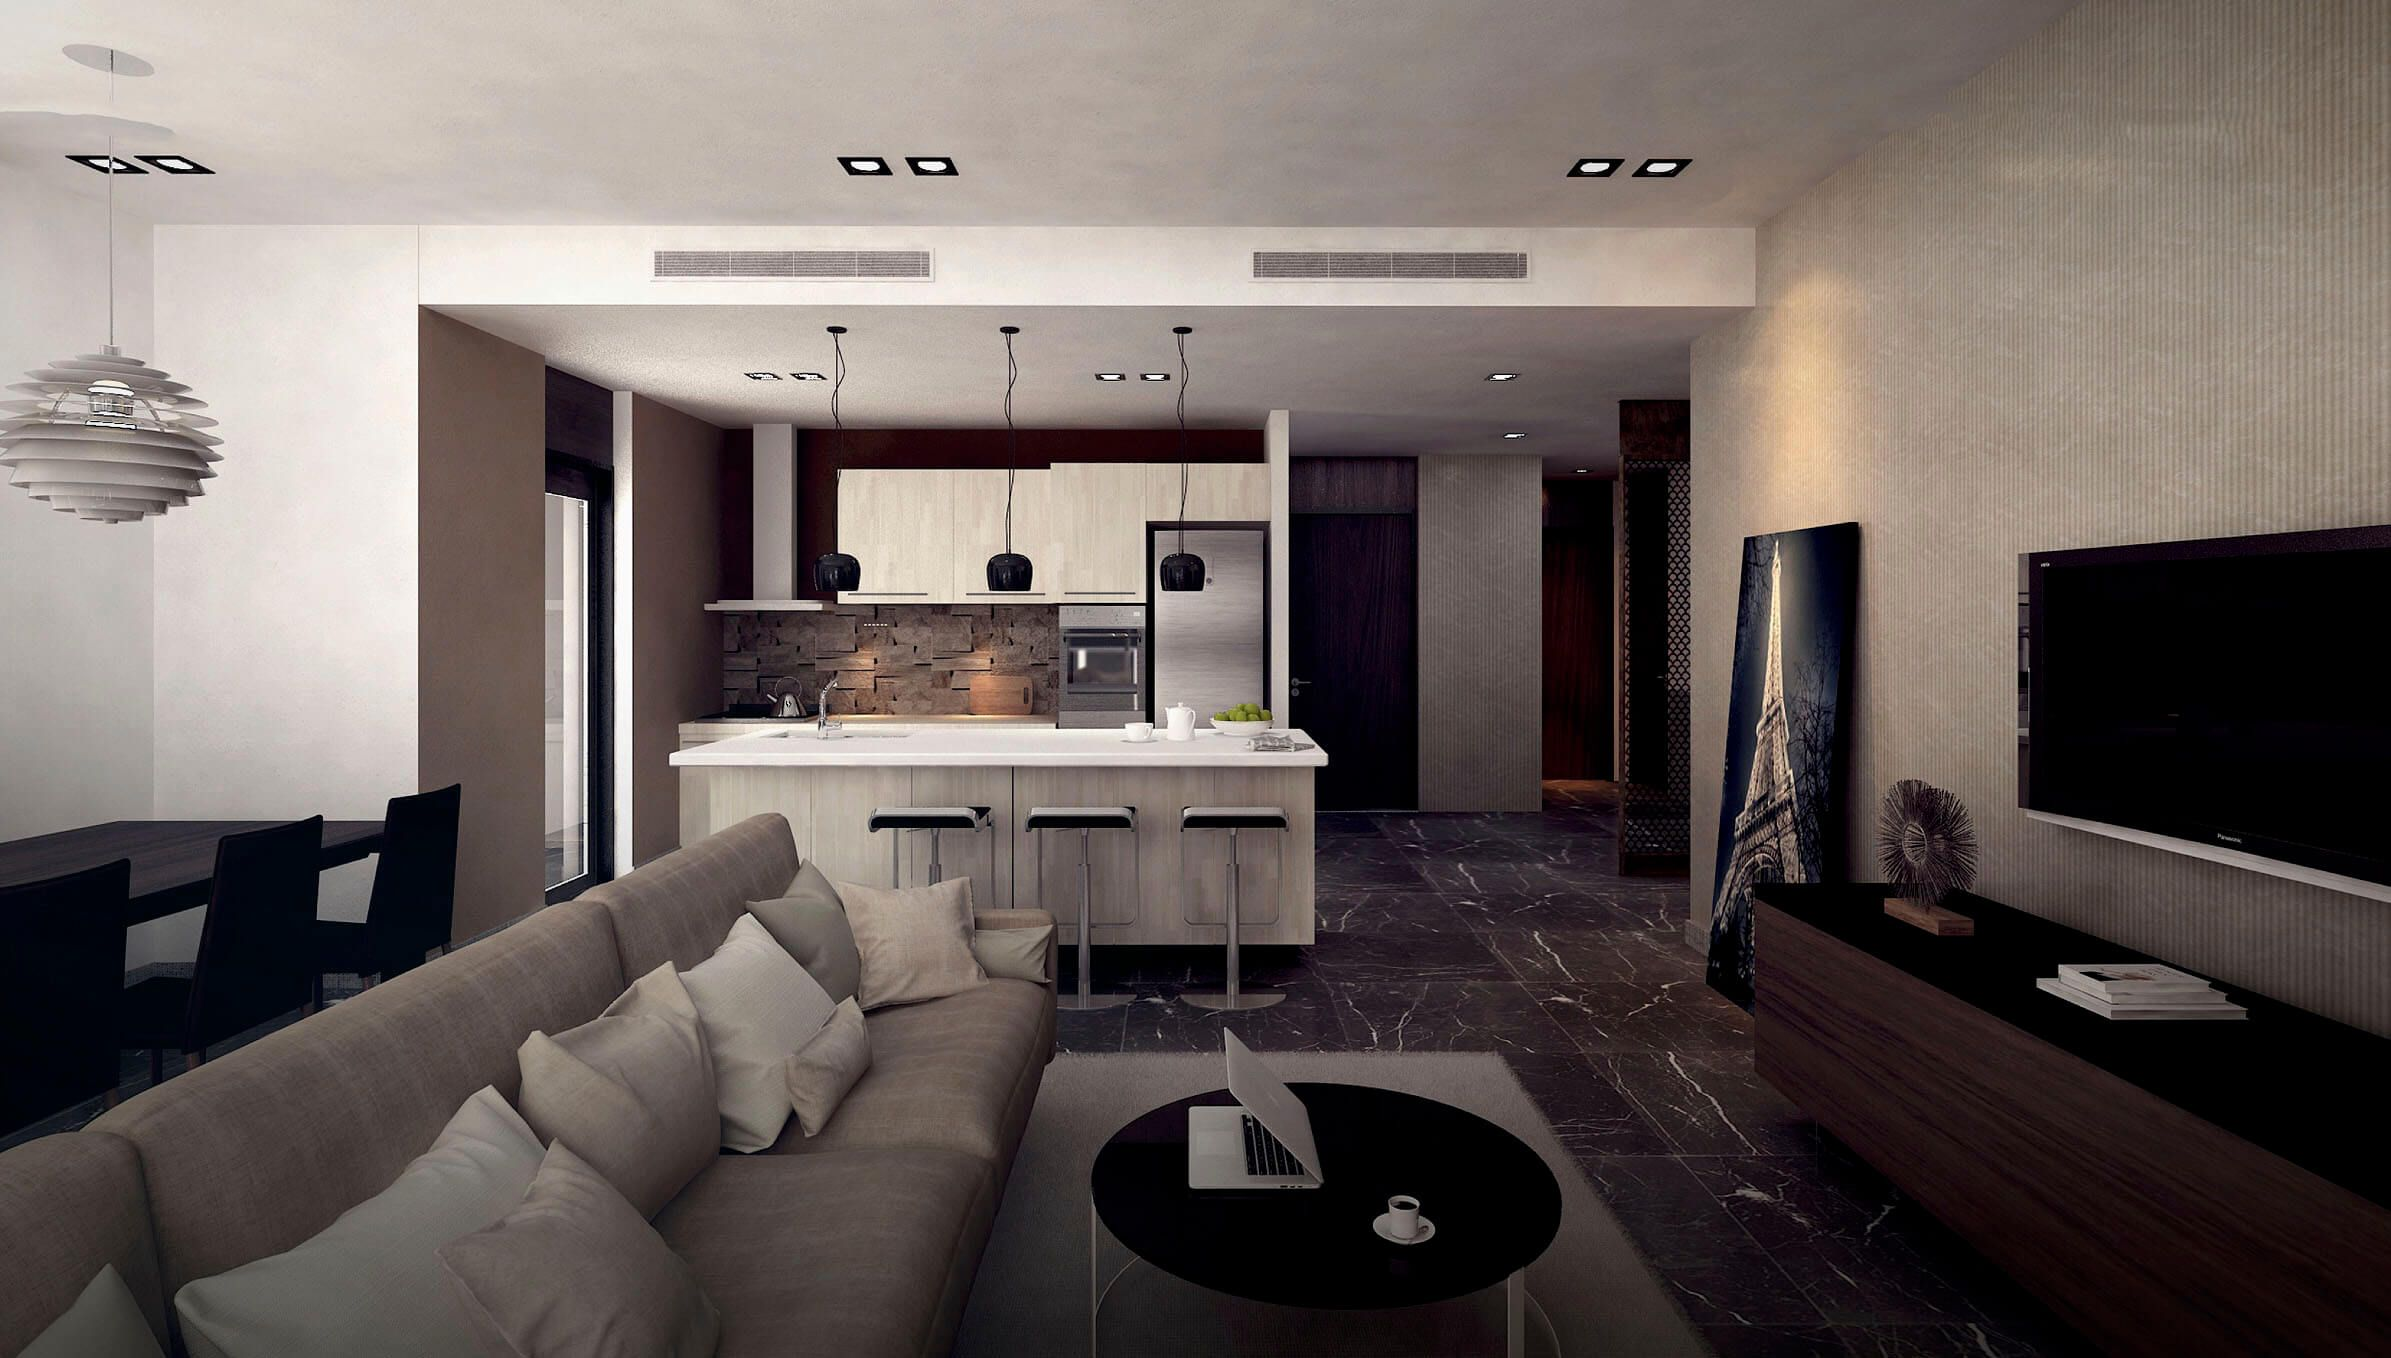 basic ideas about small apartment interior design small on stunning minimalist apartment décor ideas home decor for your small apartment id=59002